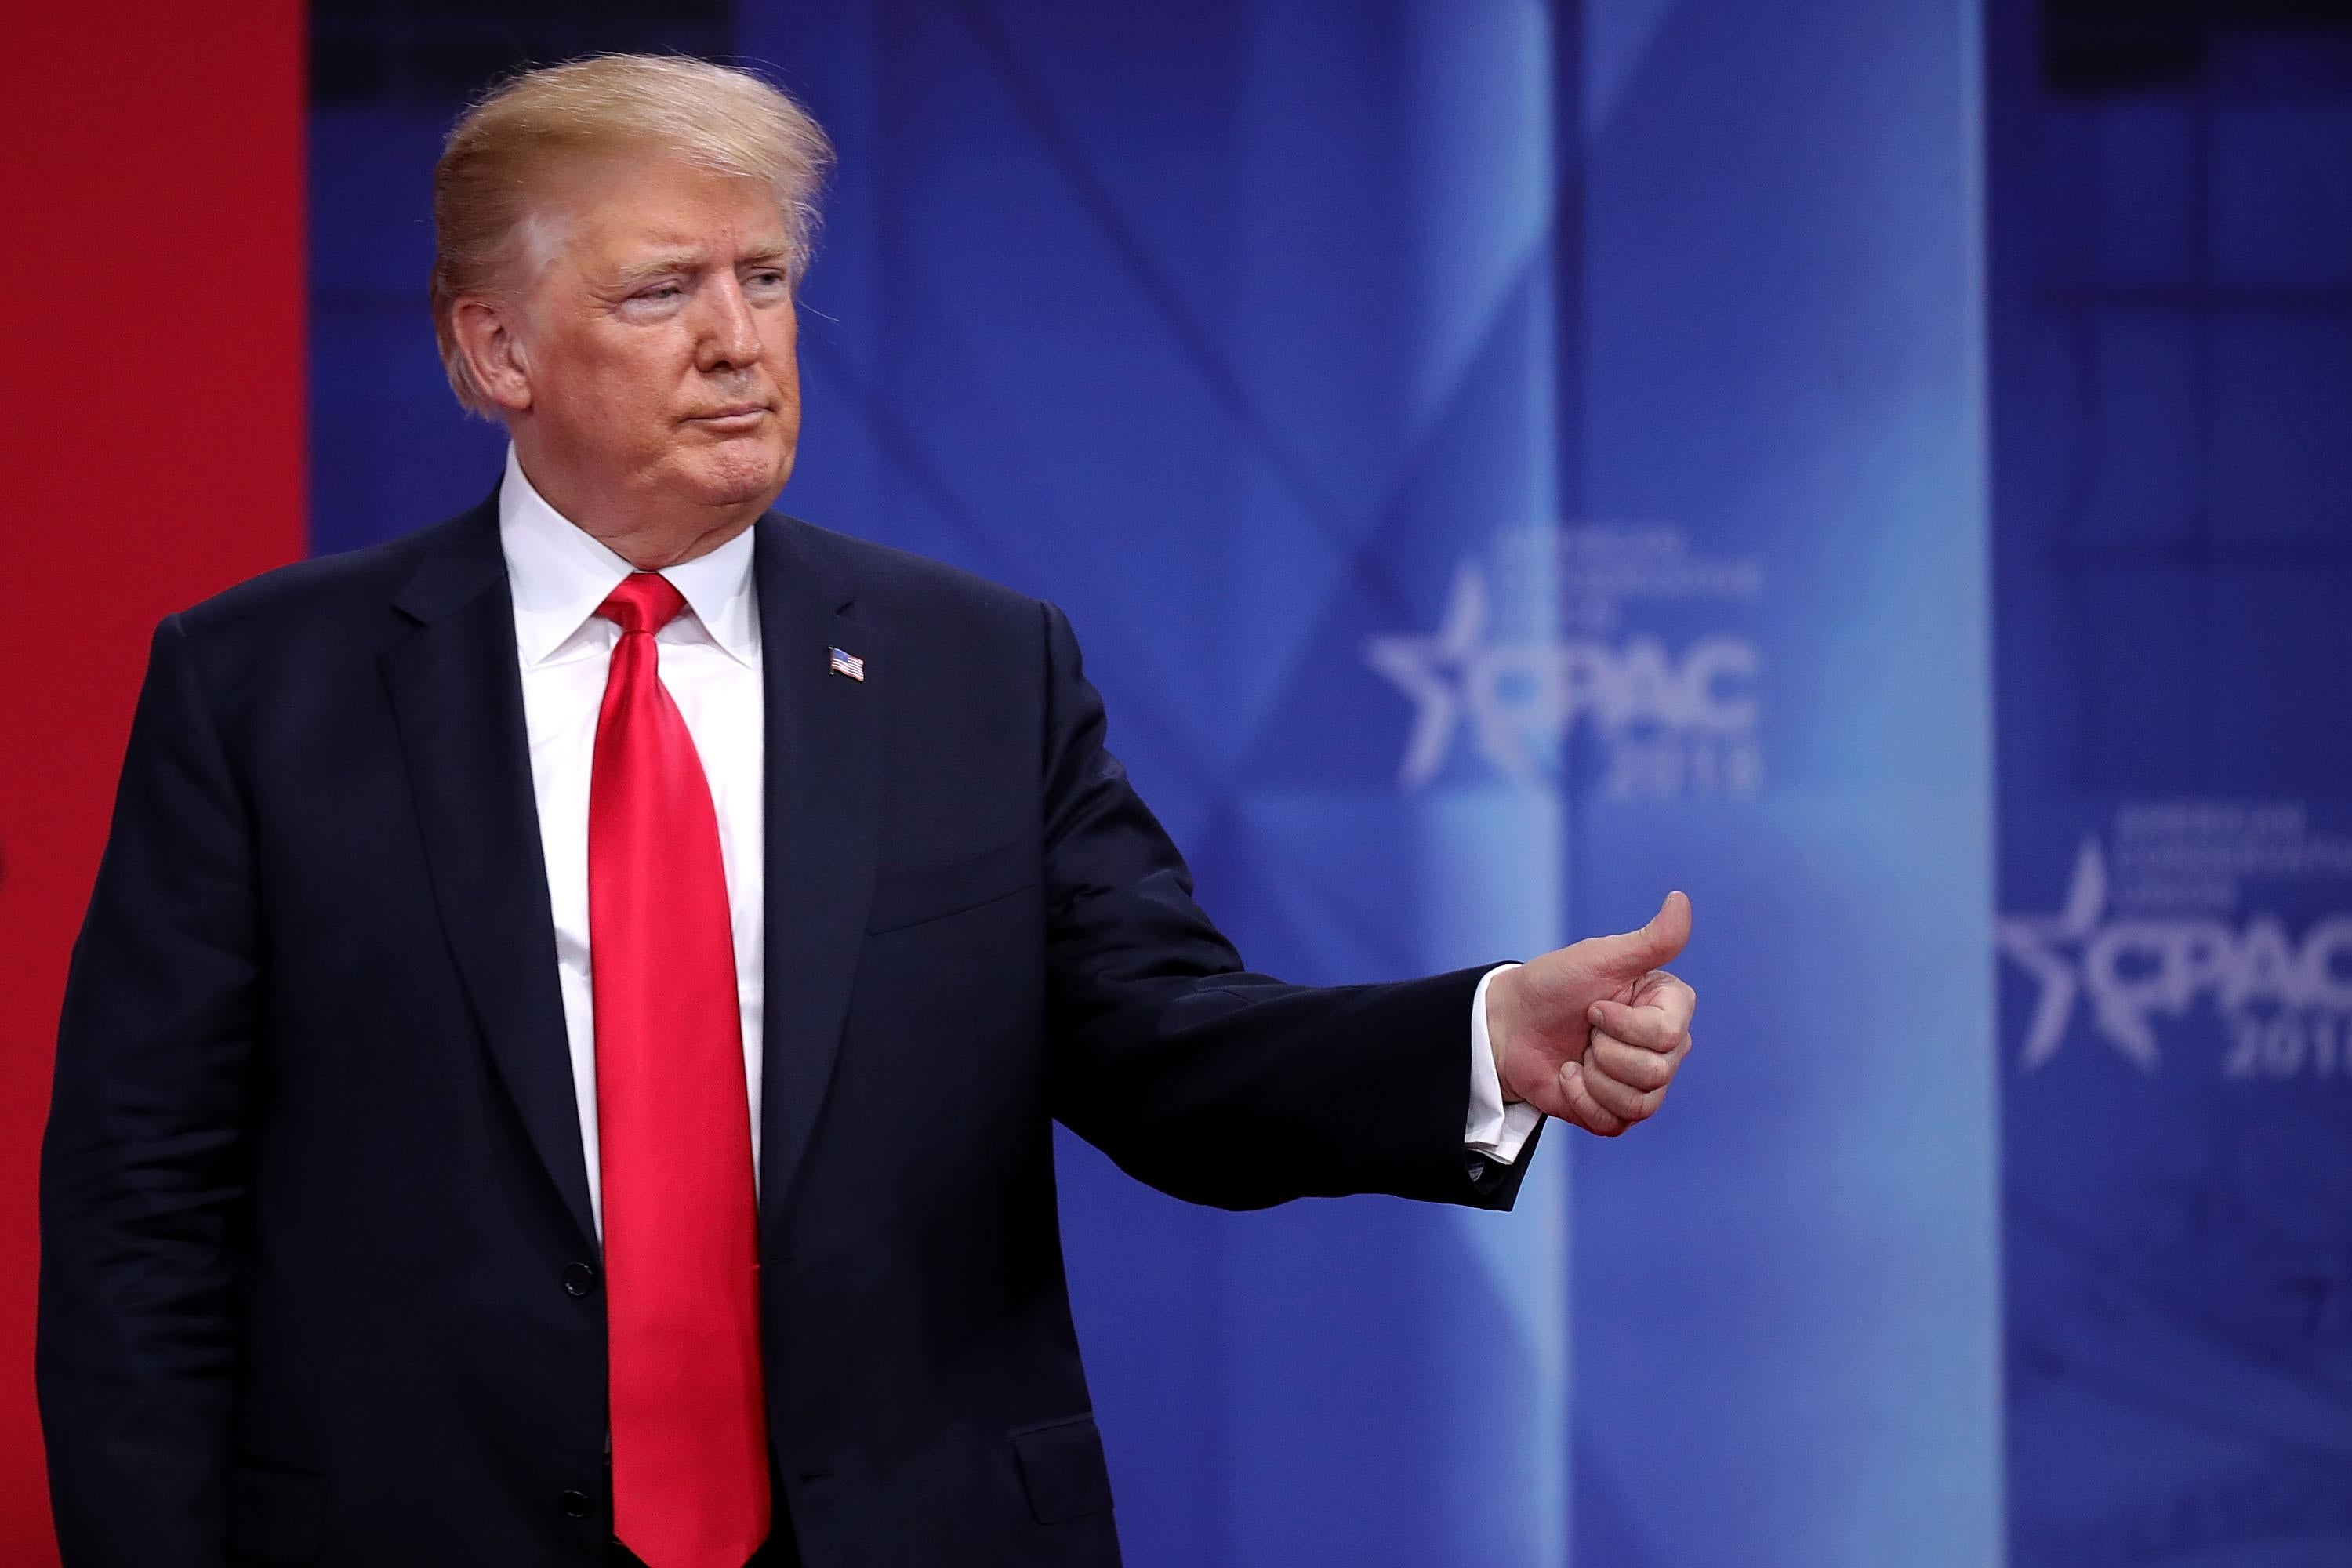 President Donald Trump gives a thumbs-up after addressing the Conservative Political Action Conference at the Gaylord National Resort and Convention Center February 23, 2018 in National Harbor, MD. This was Trump's second year in a row addressing CPAC, the largest convention of political conservatives in the country.